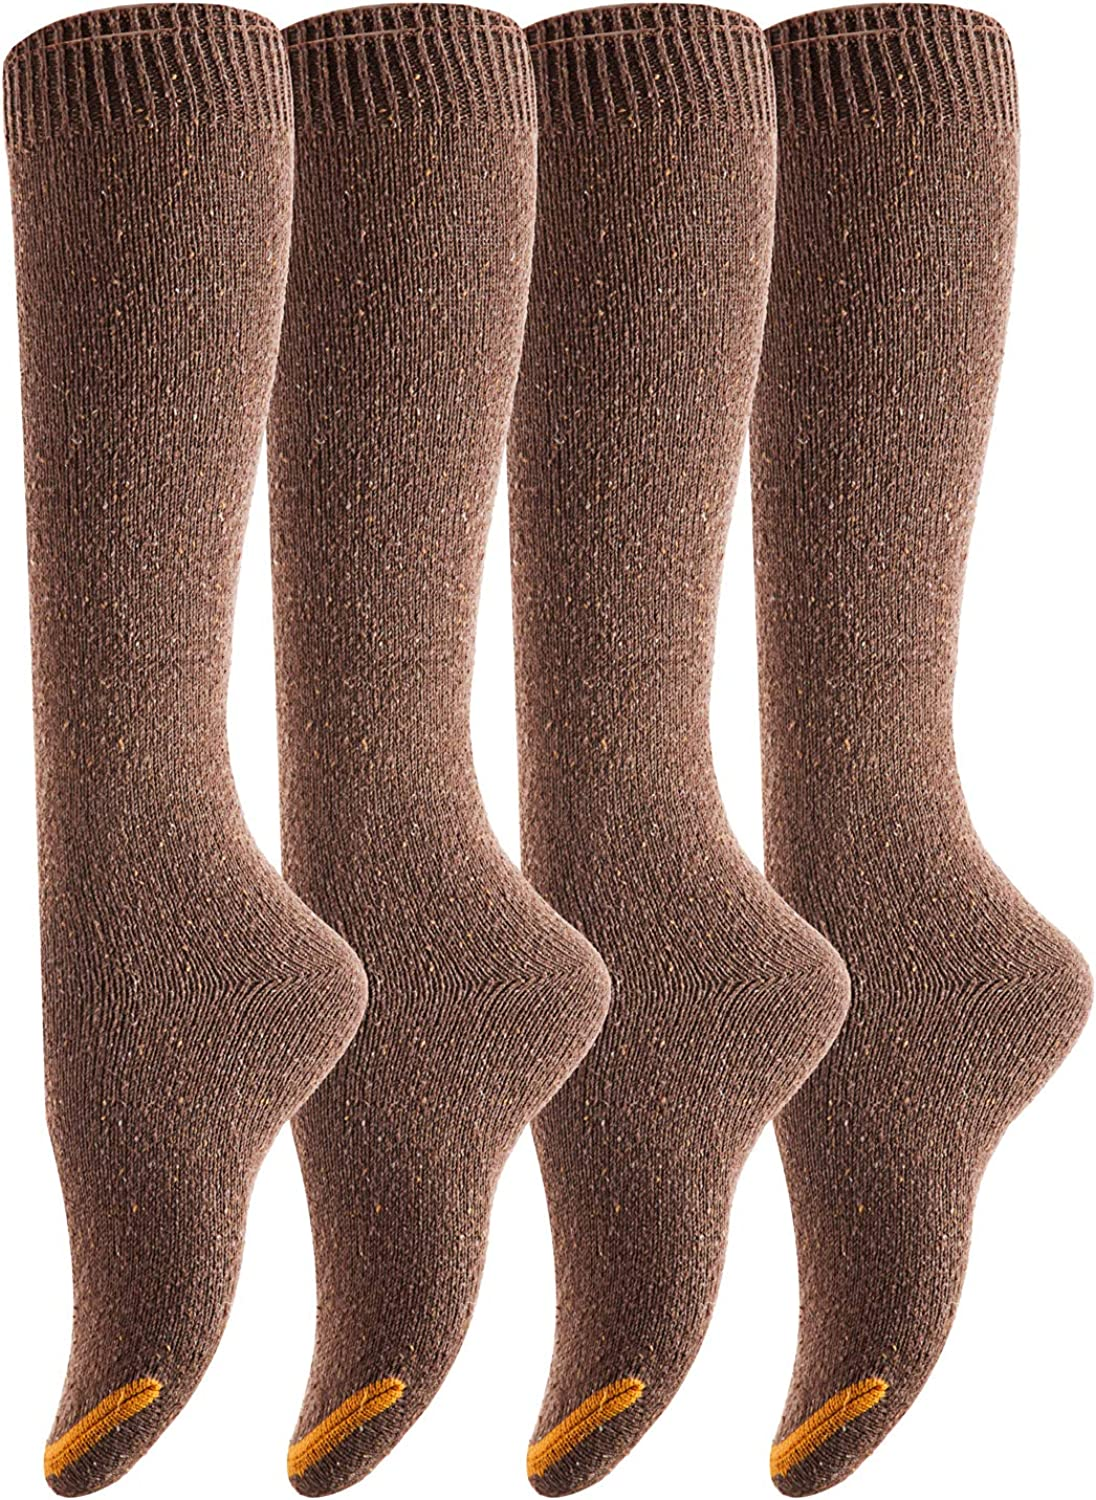 Coffee Lovely Annie Womens 4 Pairs Pack Knee High Cotton Socks Size